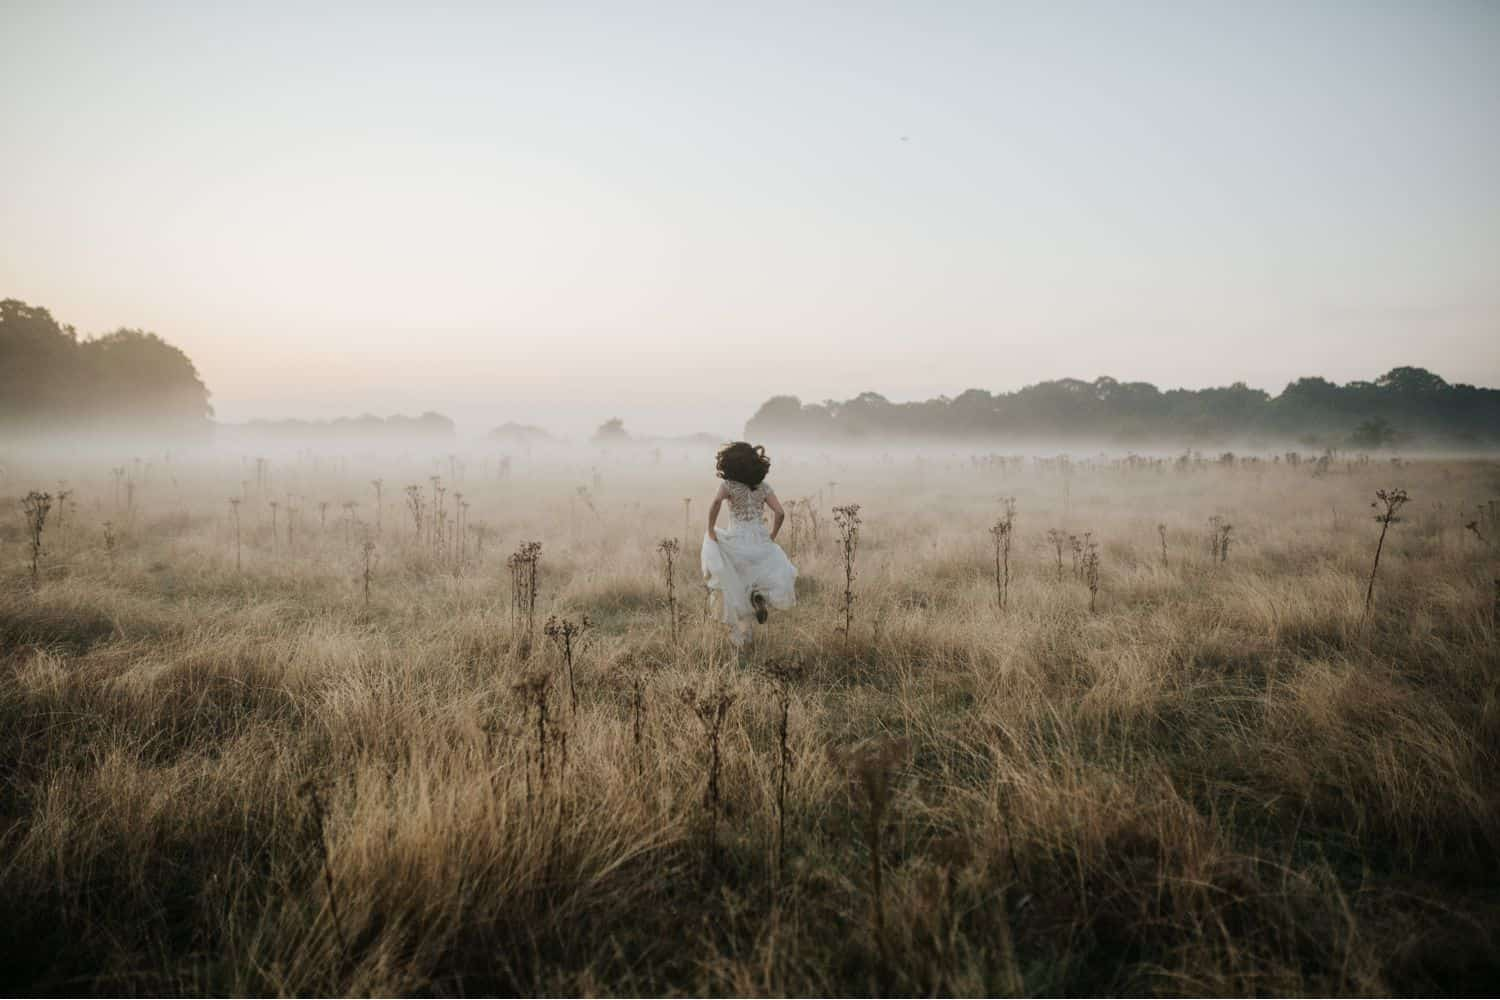 Wedding Print Packages: A bride runs away from the camera through a misty field.